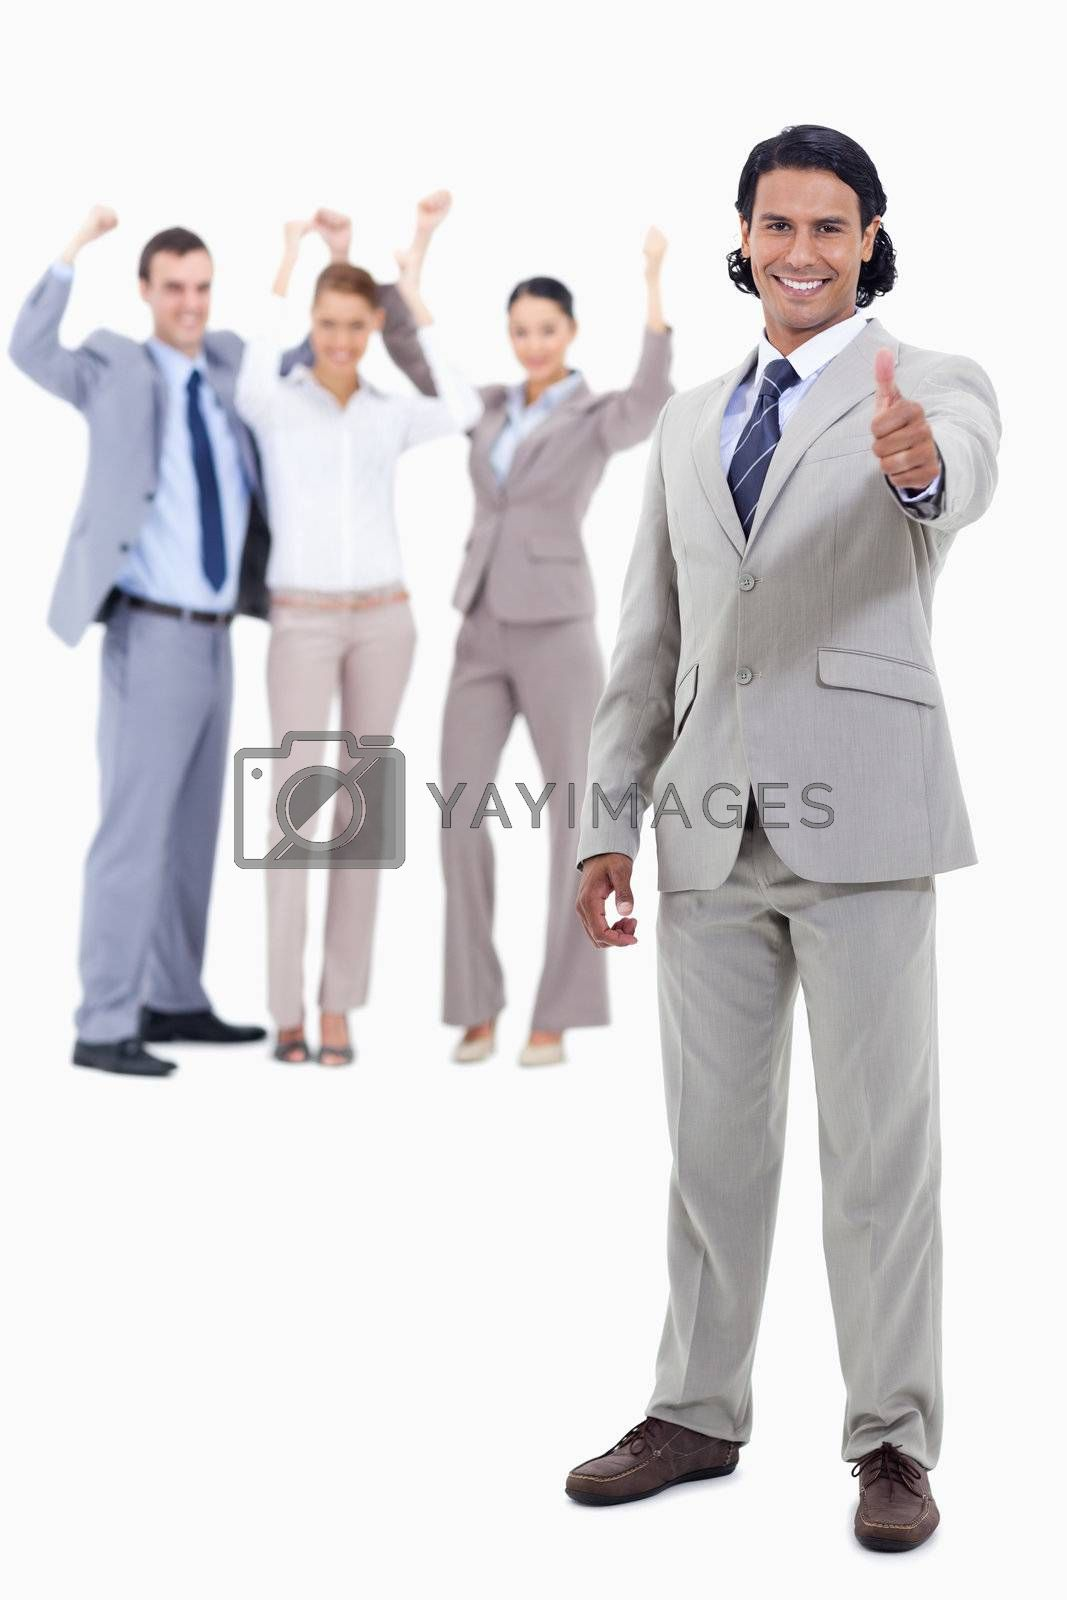 Businessman smiling with his thumbs up and cheering people behind him against white background